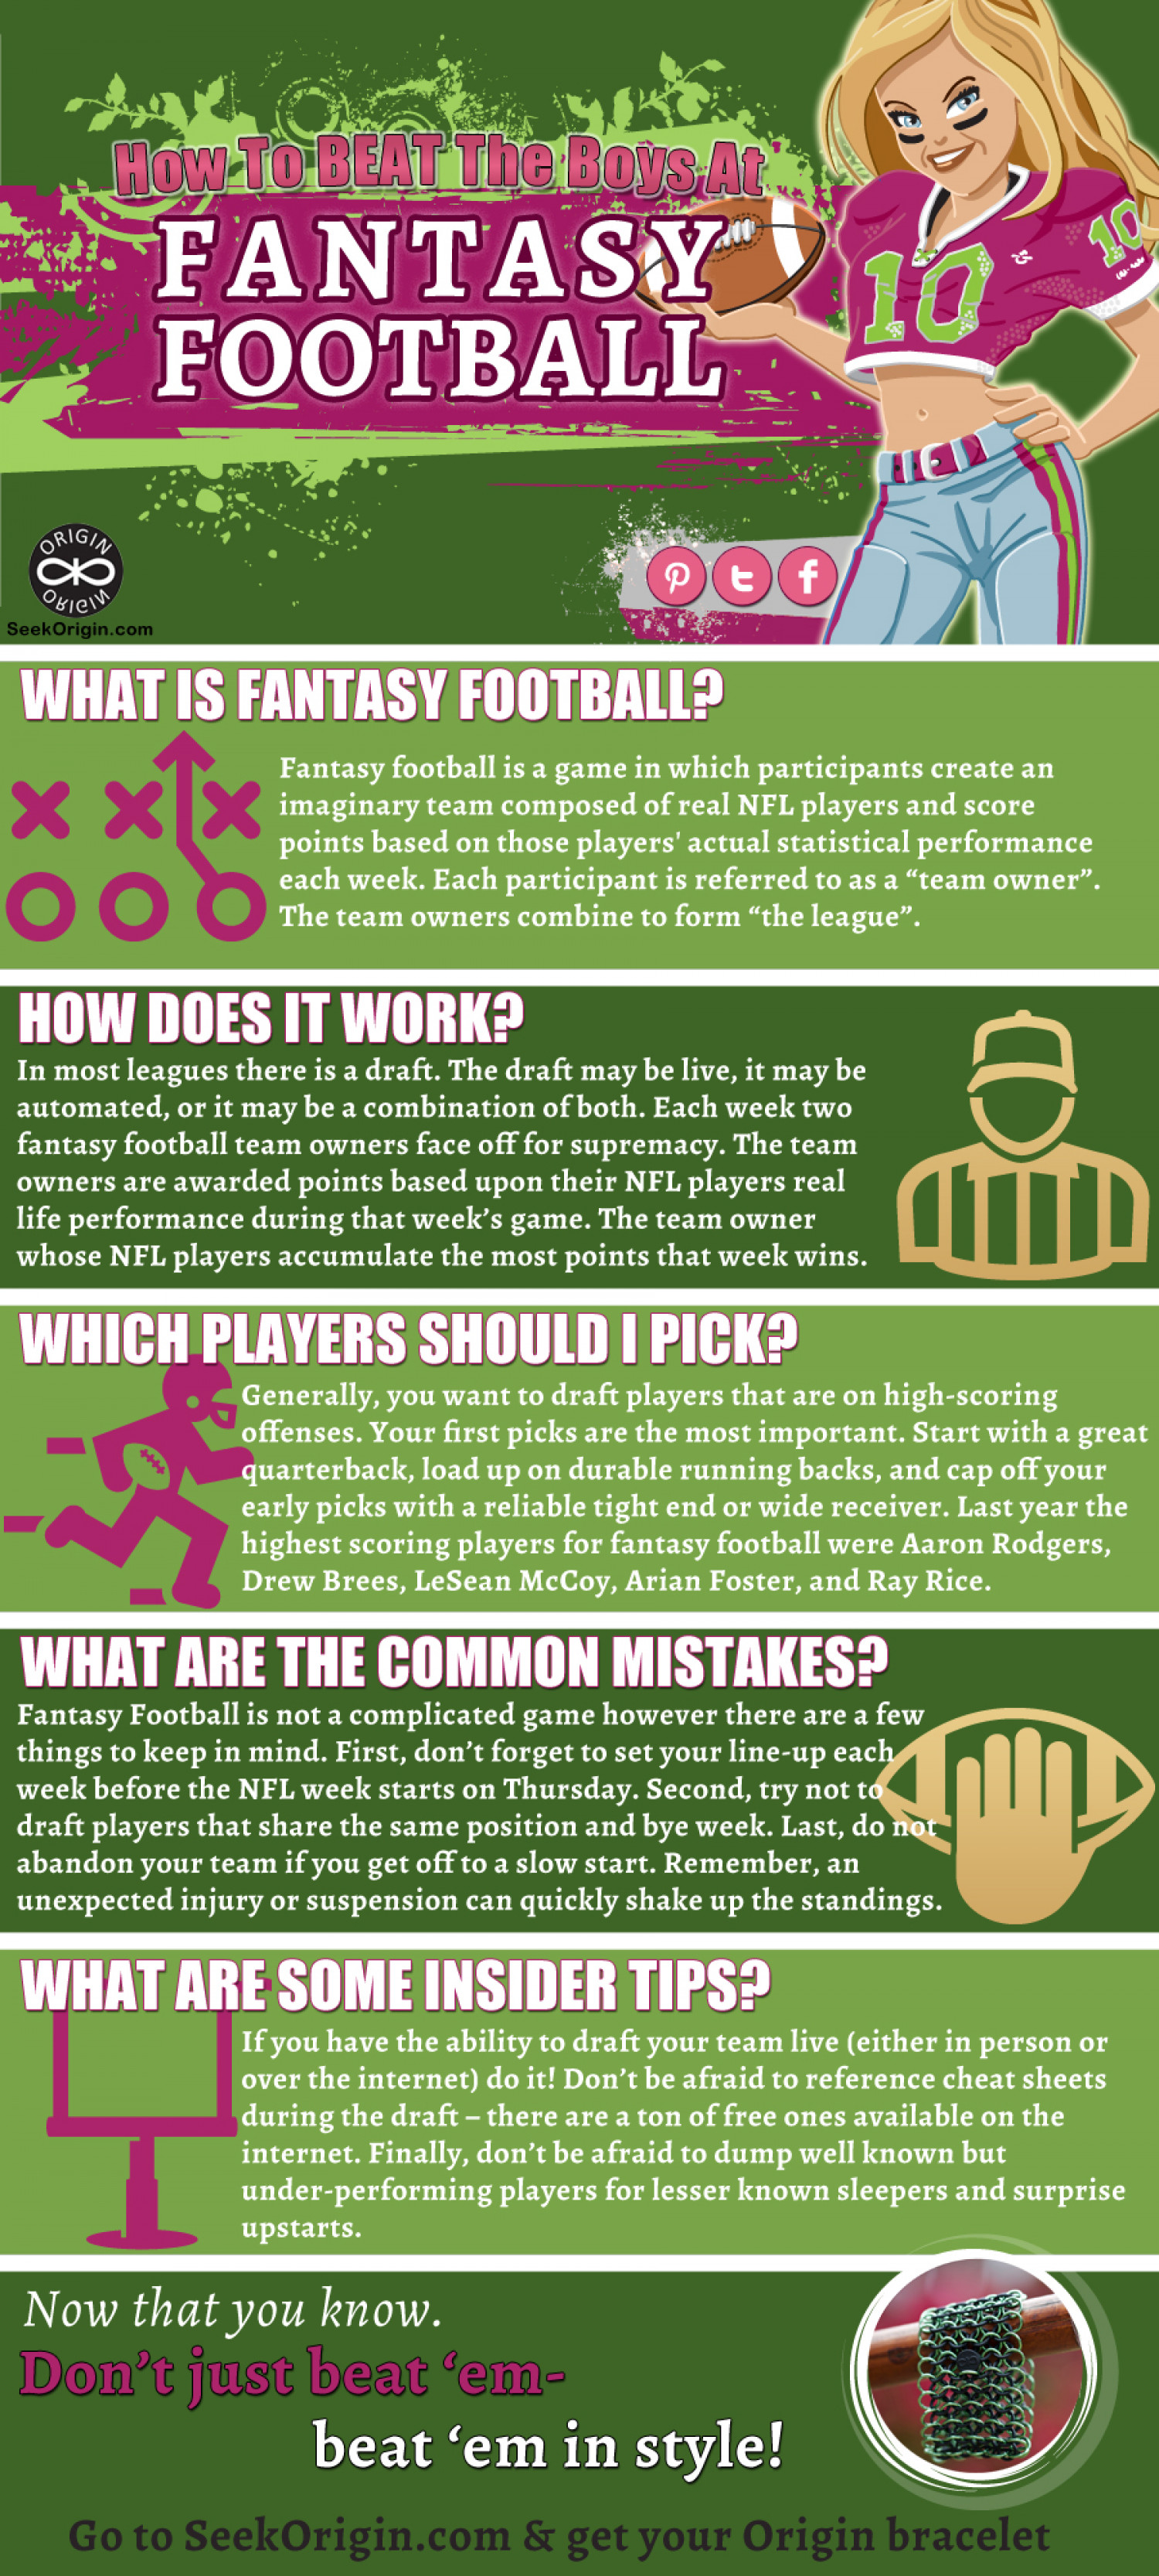 How to Play Fantasy Football: The Girls Guide   Visual.ly